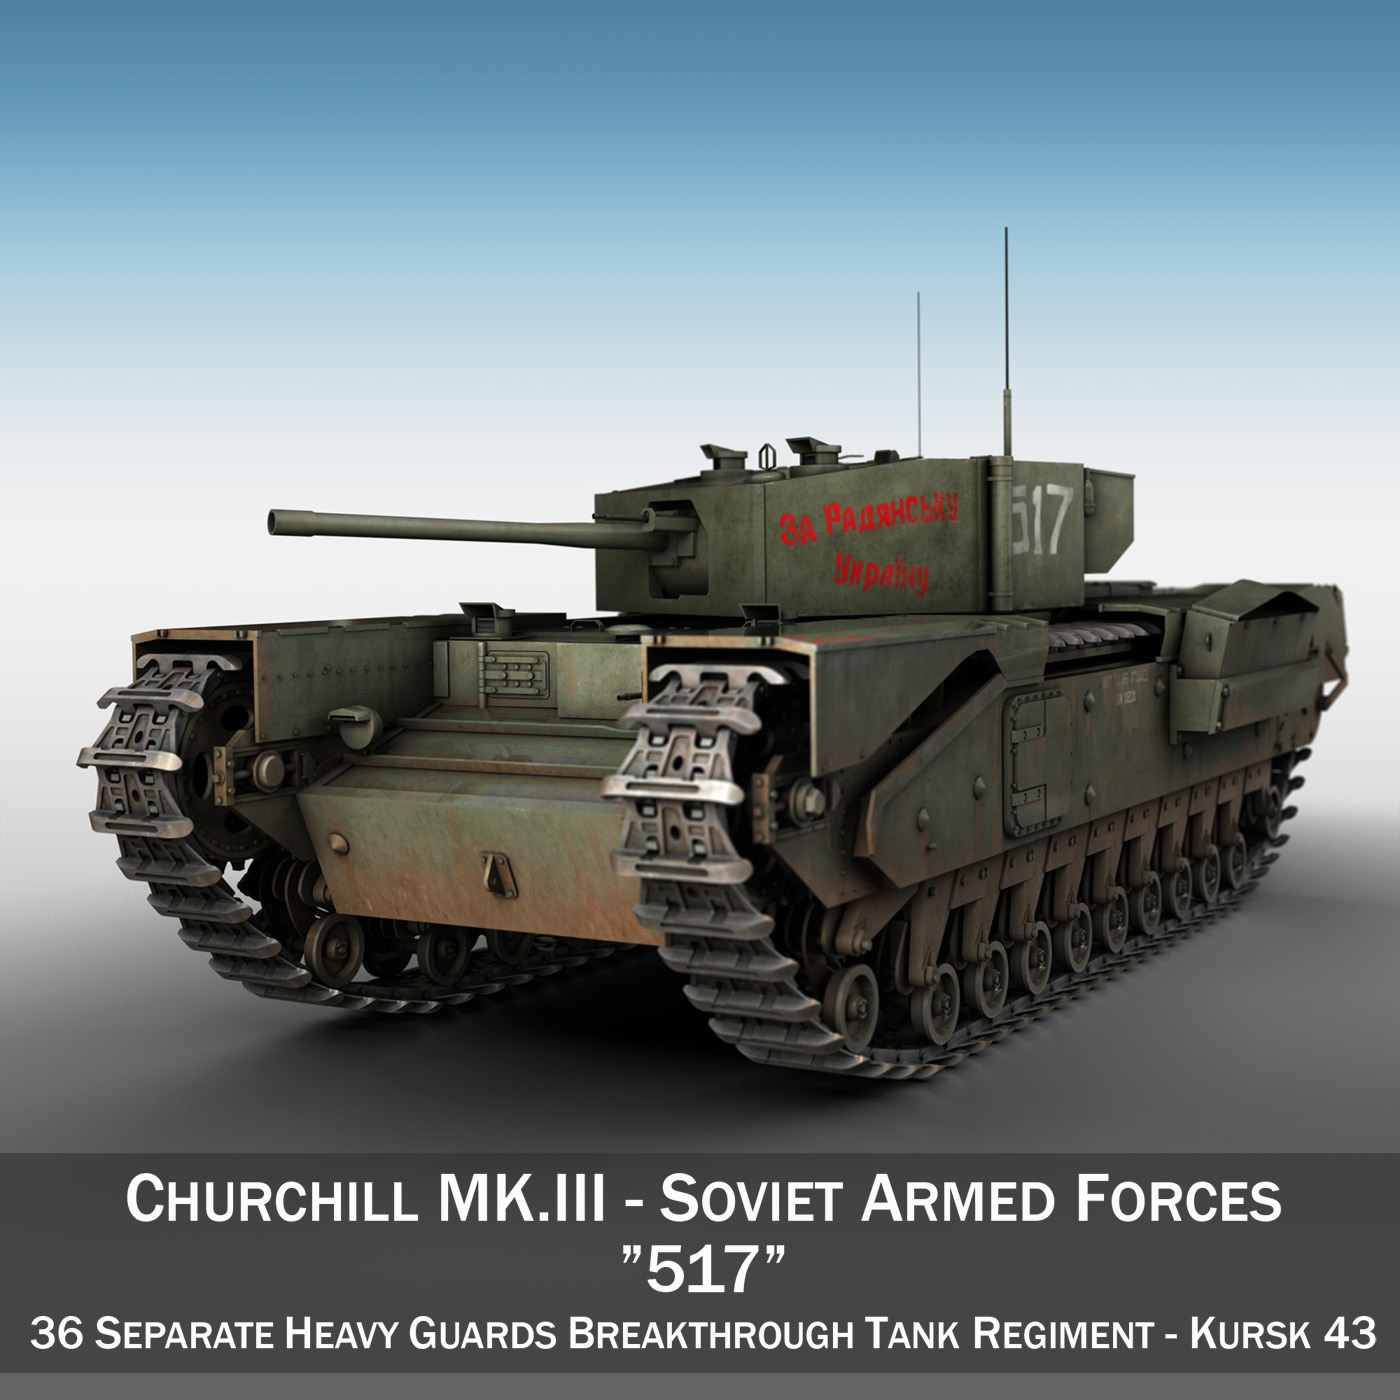 churchill mk iii - 517 - soviet army 3d загвар 3ds fbx c4d lwo obj 272974